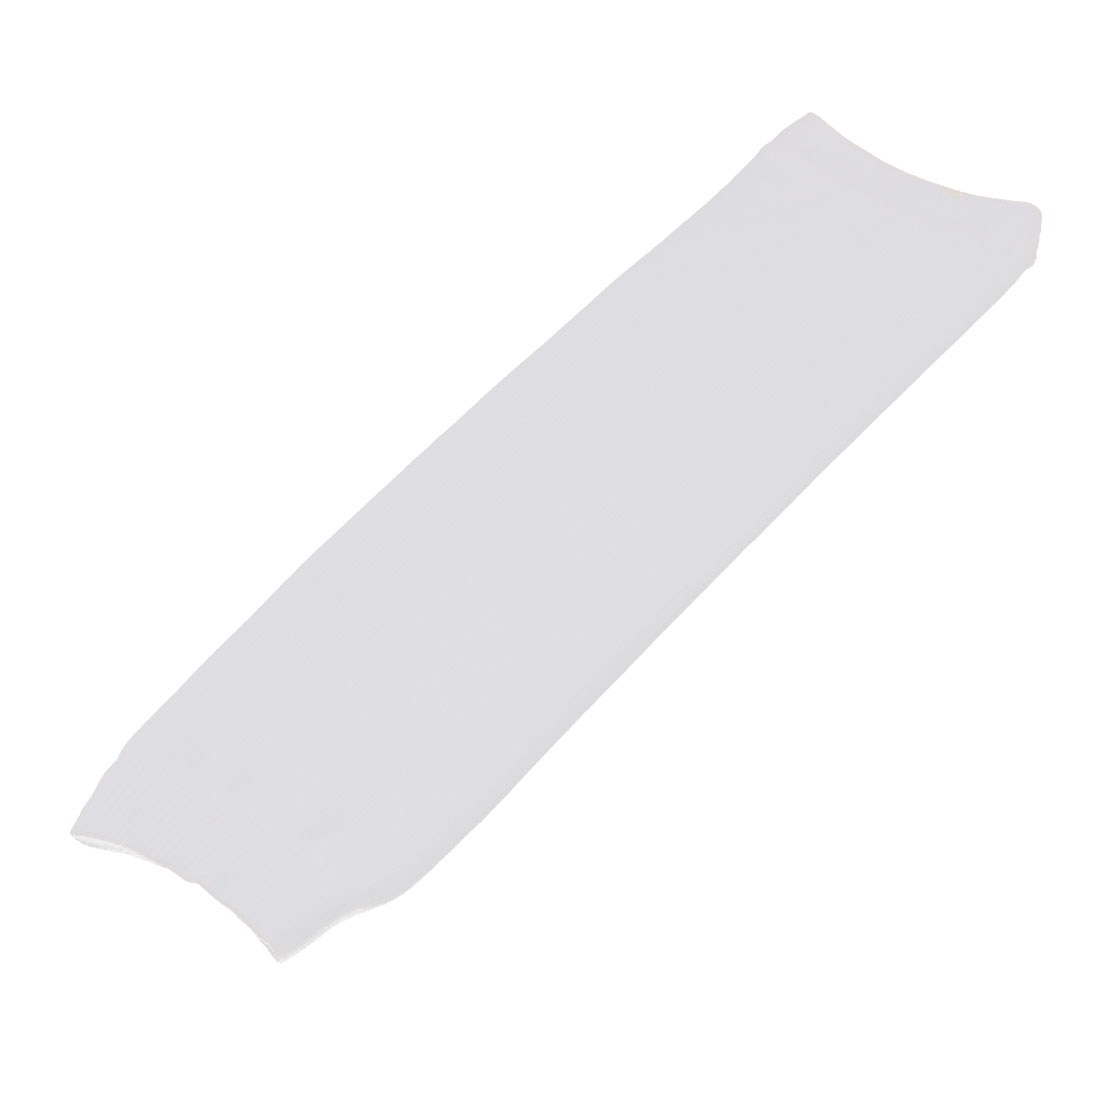 Fitness Elastic Fabric Sleeve Protective Elbow Arm Support Guard Brace White